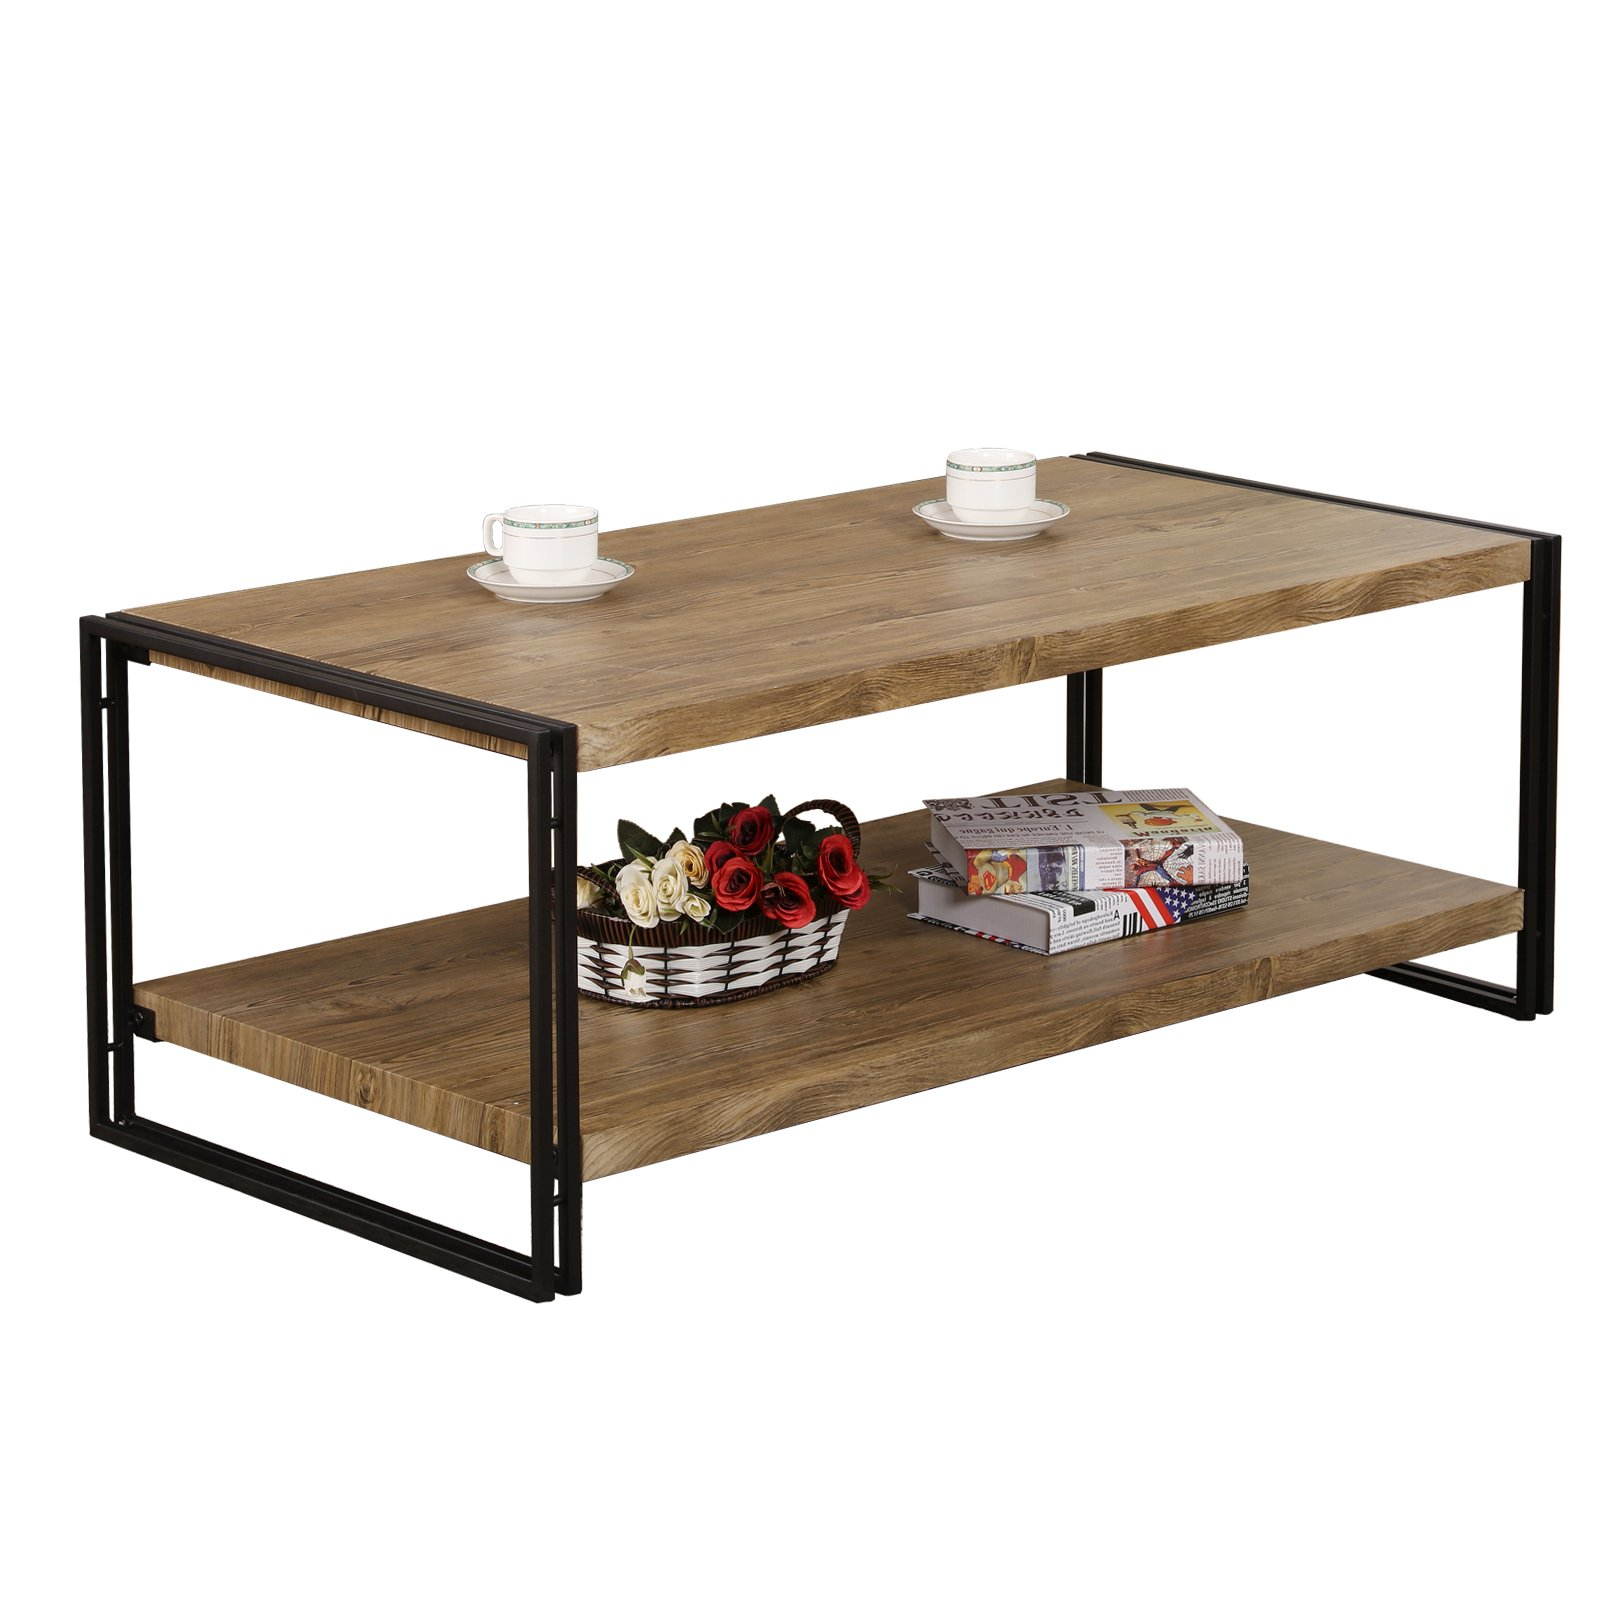 FIVEGIVEN Coffee Table for Living Room Rustic Industrial Coffee Table with Storage, Wood and Metal, Sonoma Oak, Rectangular